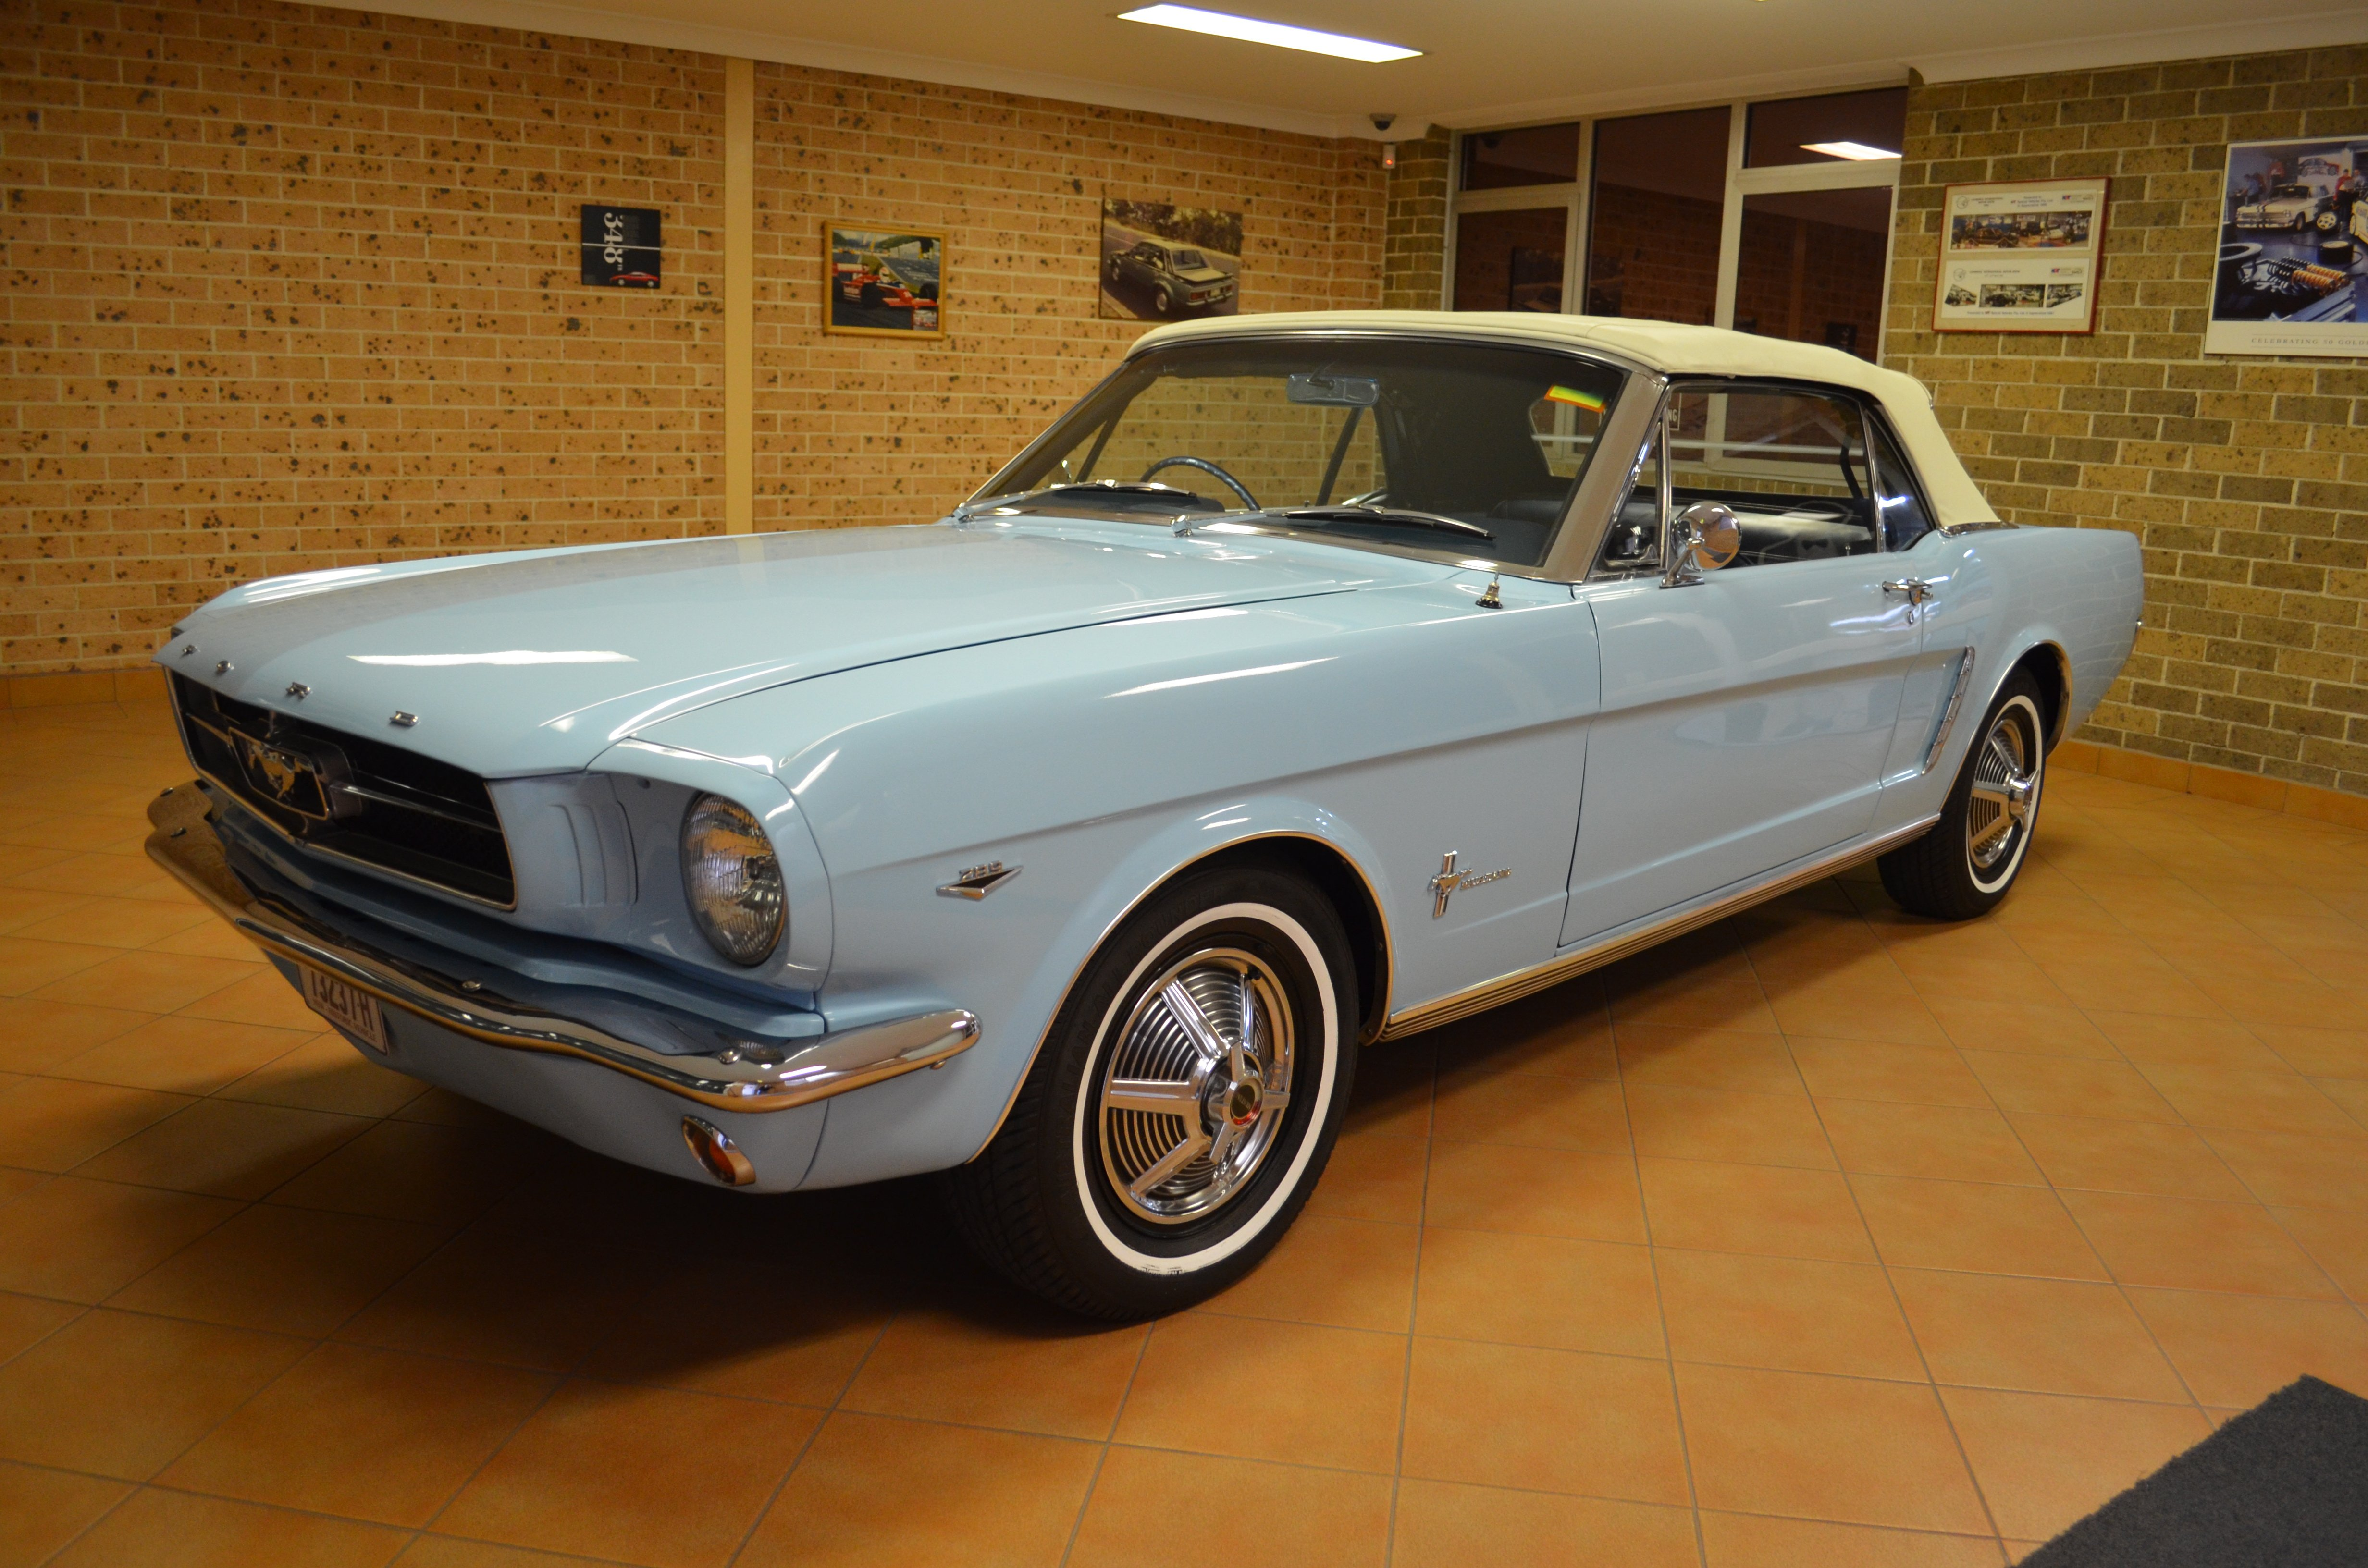 1964 Ford Mustang Convertible 1 2 D Code 33266 Miles Muscle